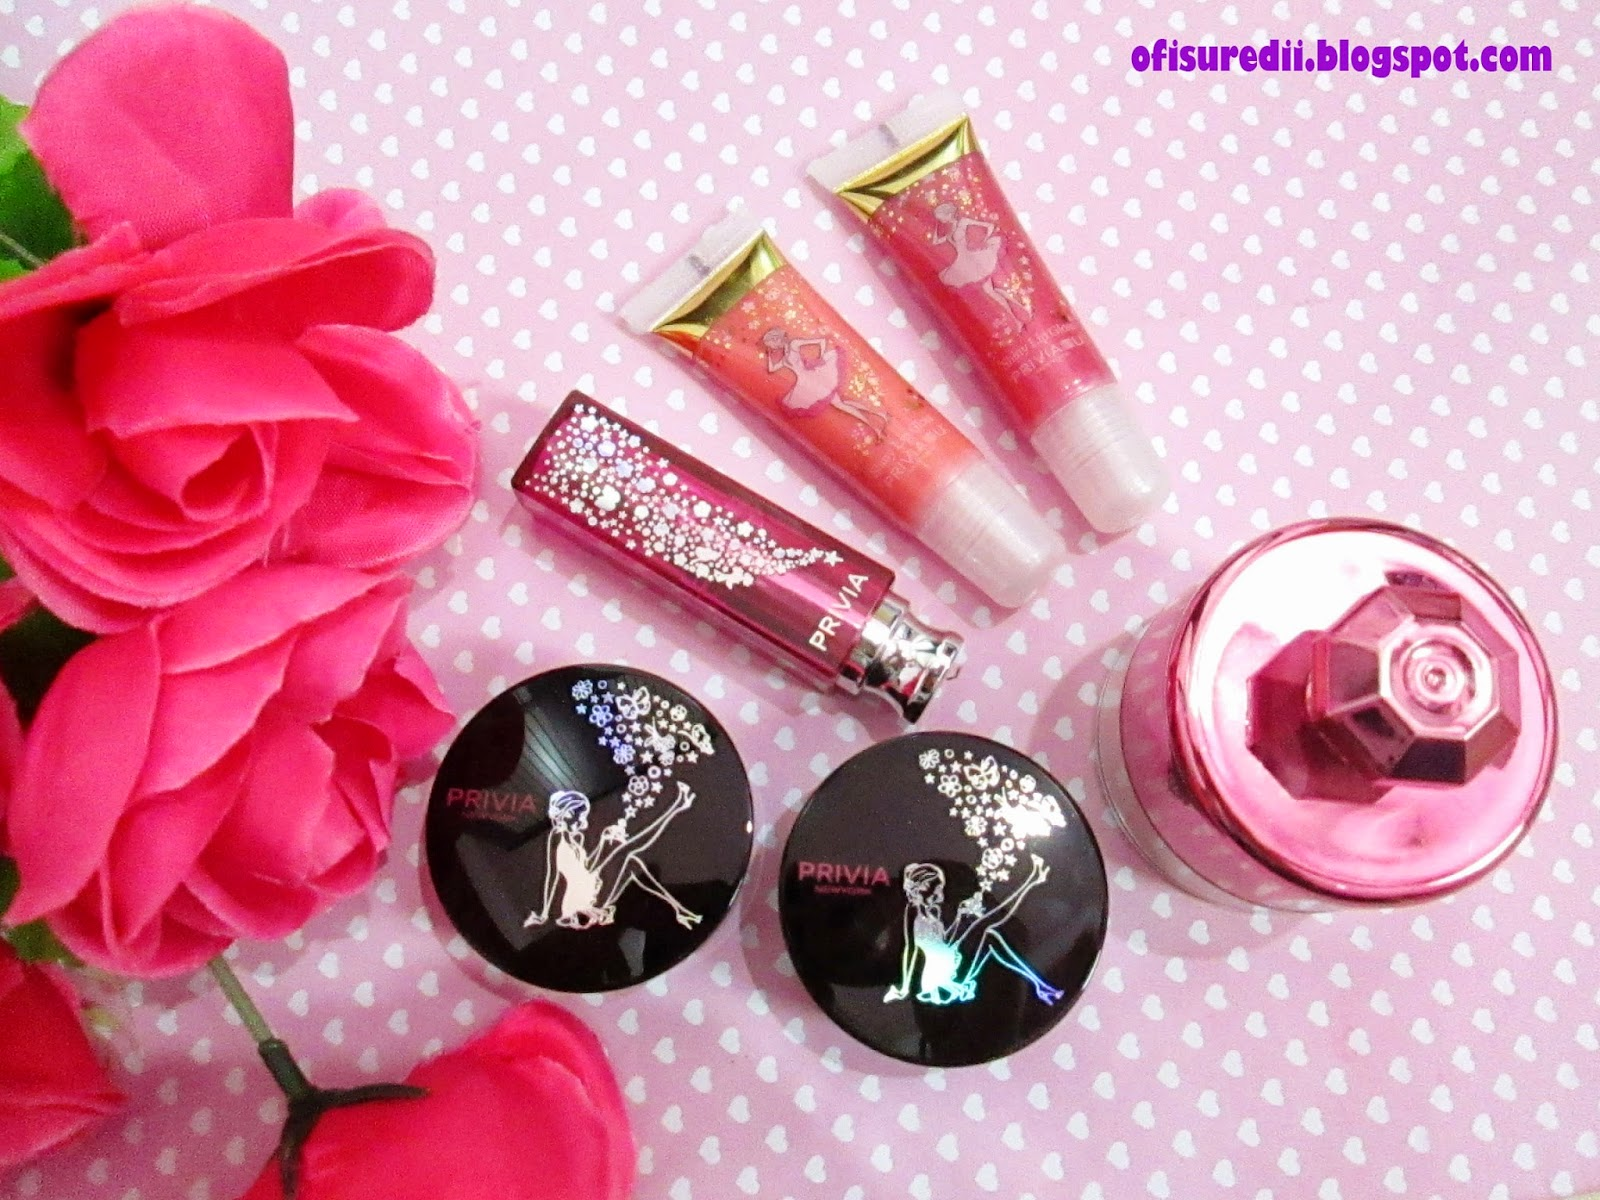 Privia U Shiny Lip Gloss Glittering Lipstick Eye Korea Has A Super Cute Packaging You See There Is Girl In And Shadow My Eyes Cant Glace From Face Powder